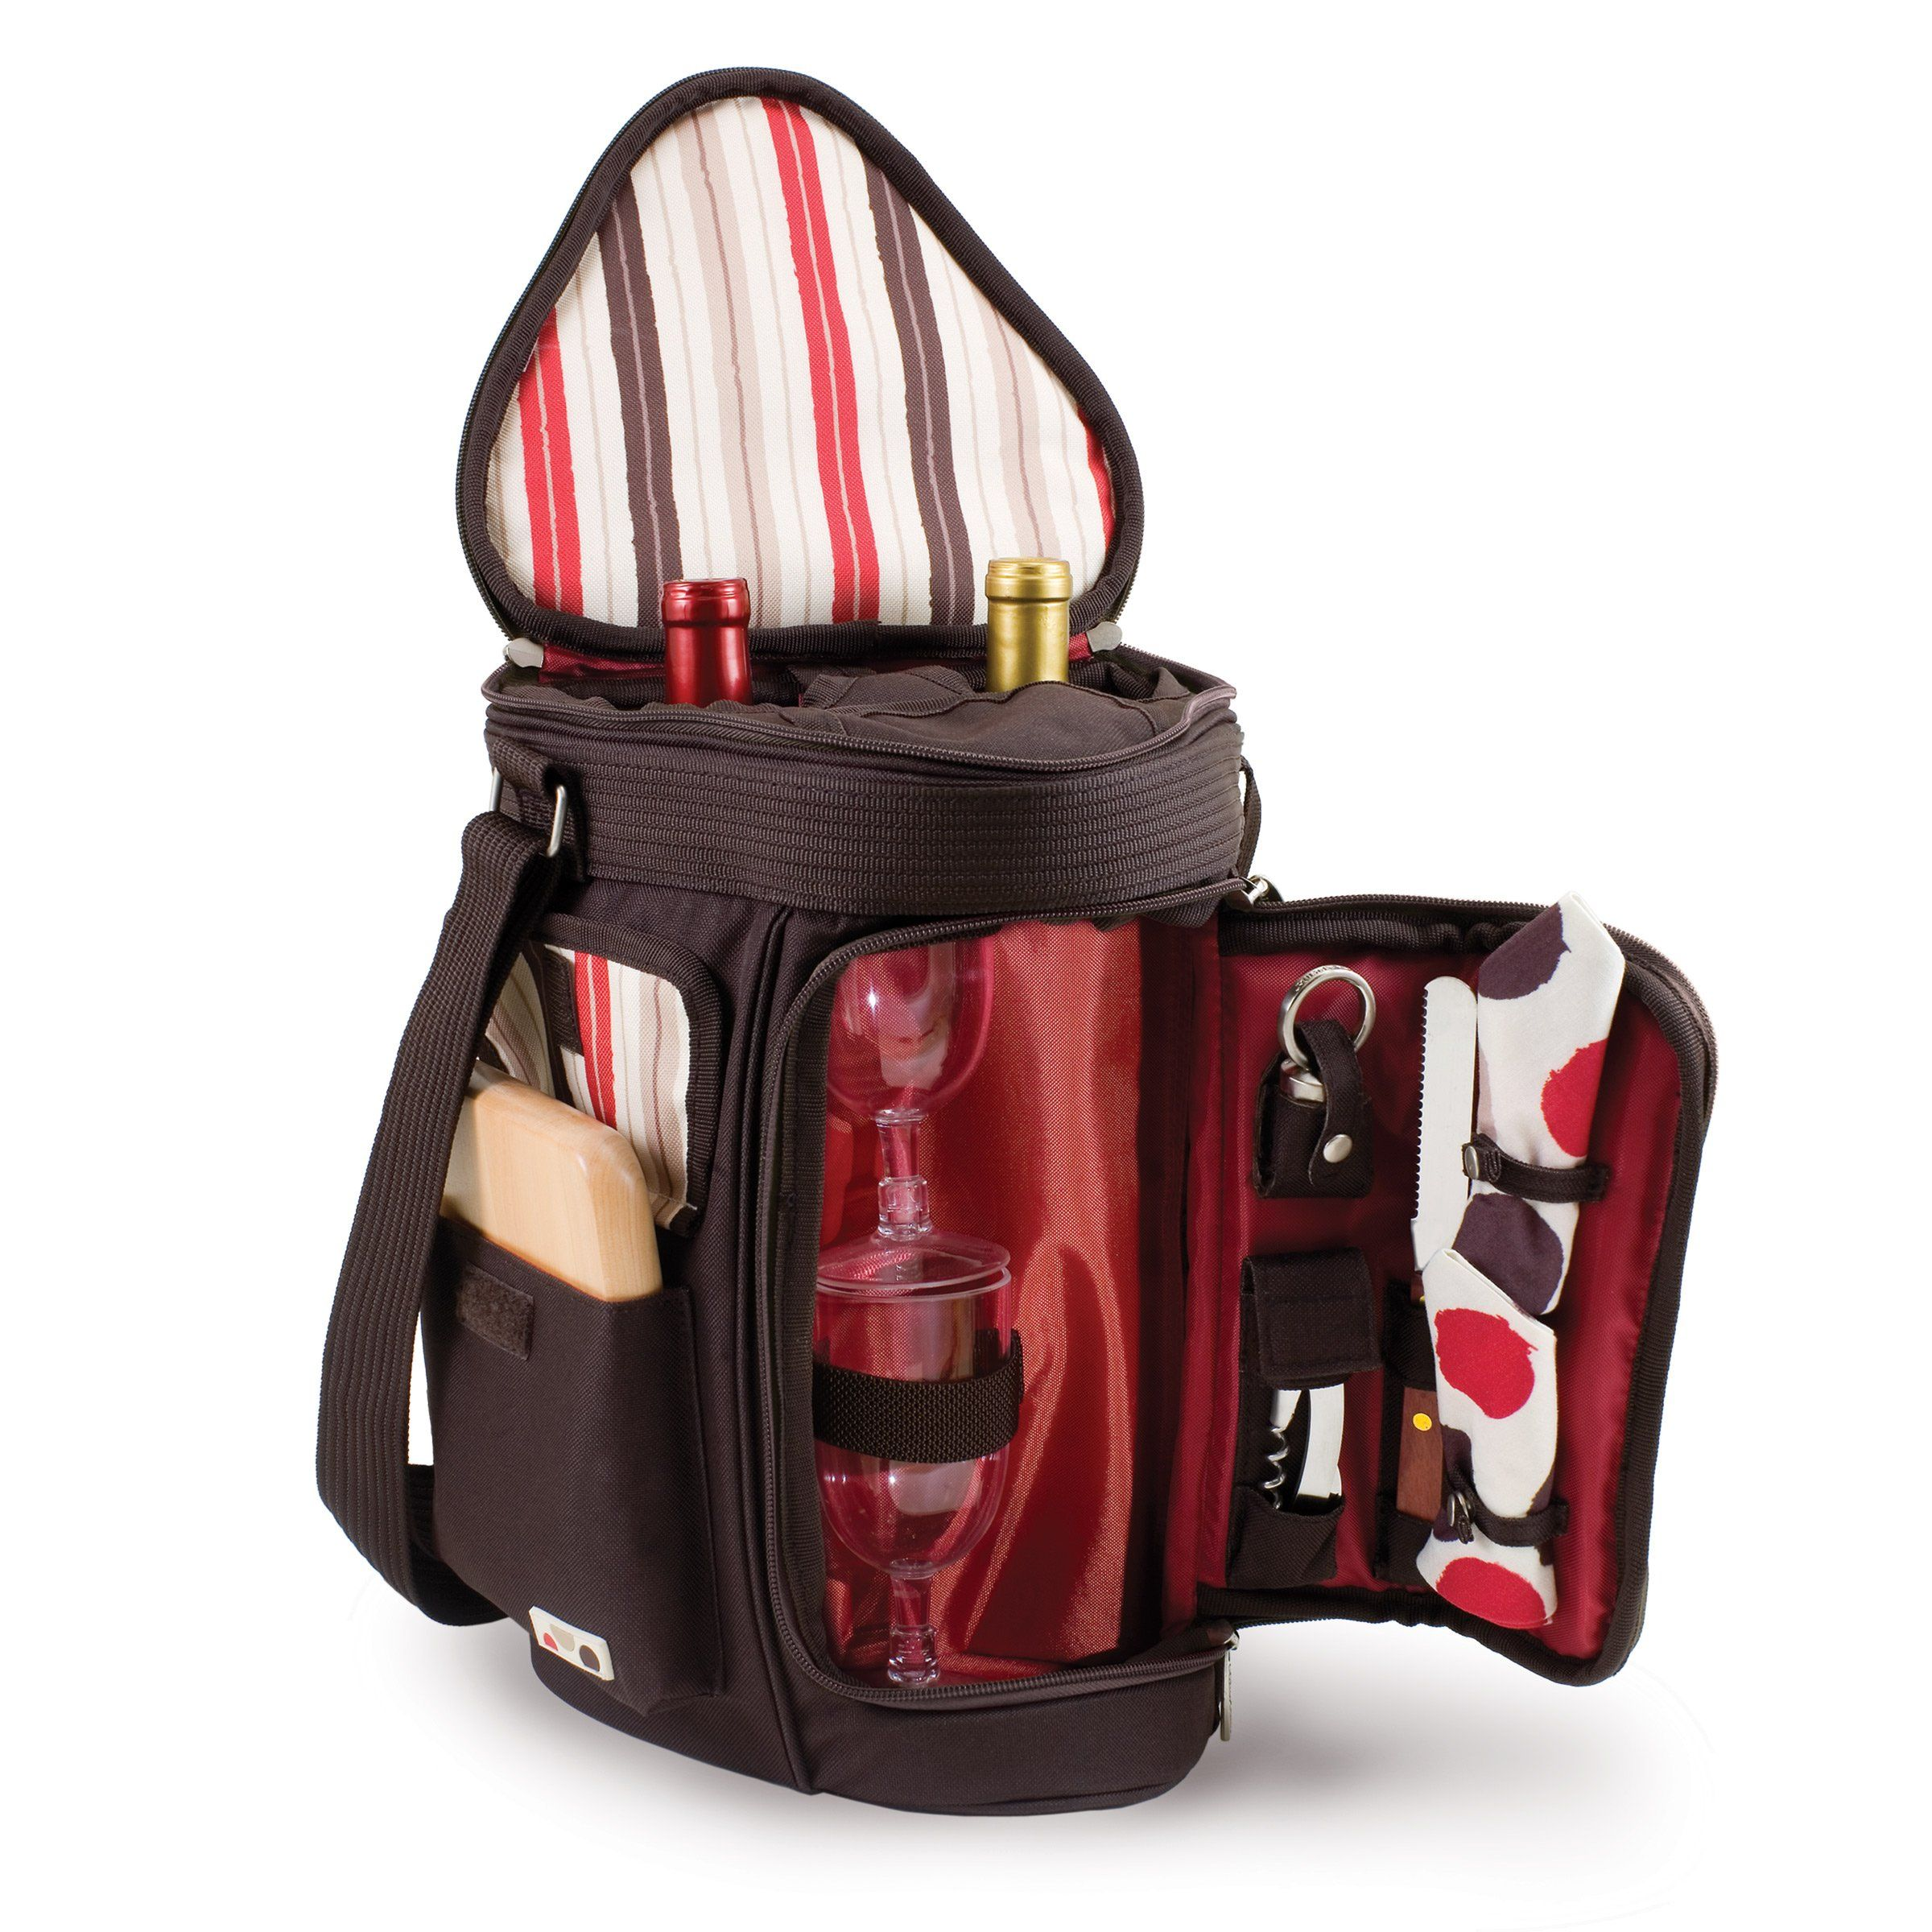 Picnic Time Meritage Insulated Triangular Wine And Cheese Cooler Tote Moka Wine Tote Picnic Time Wine Carrier Bag